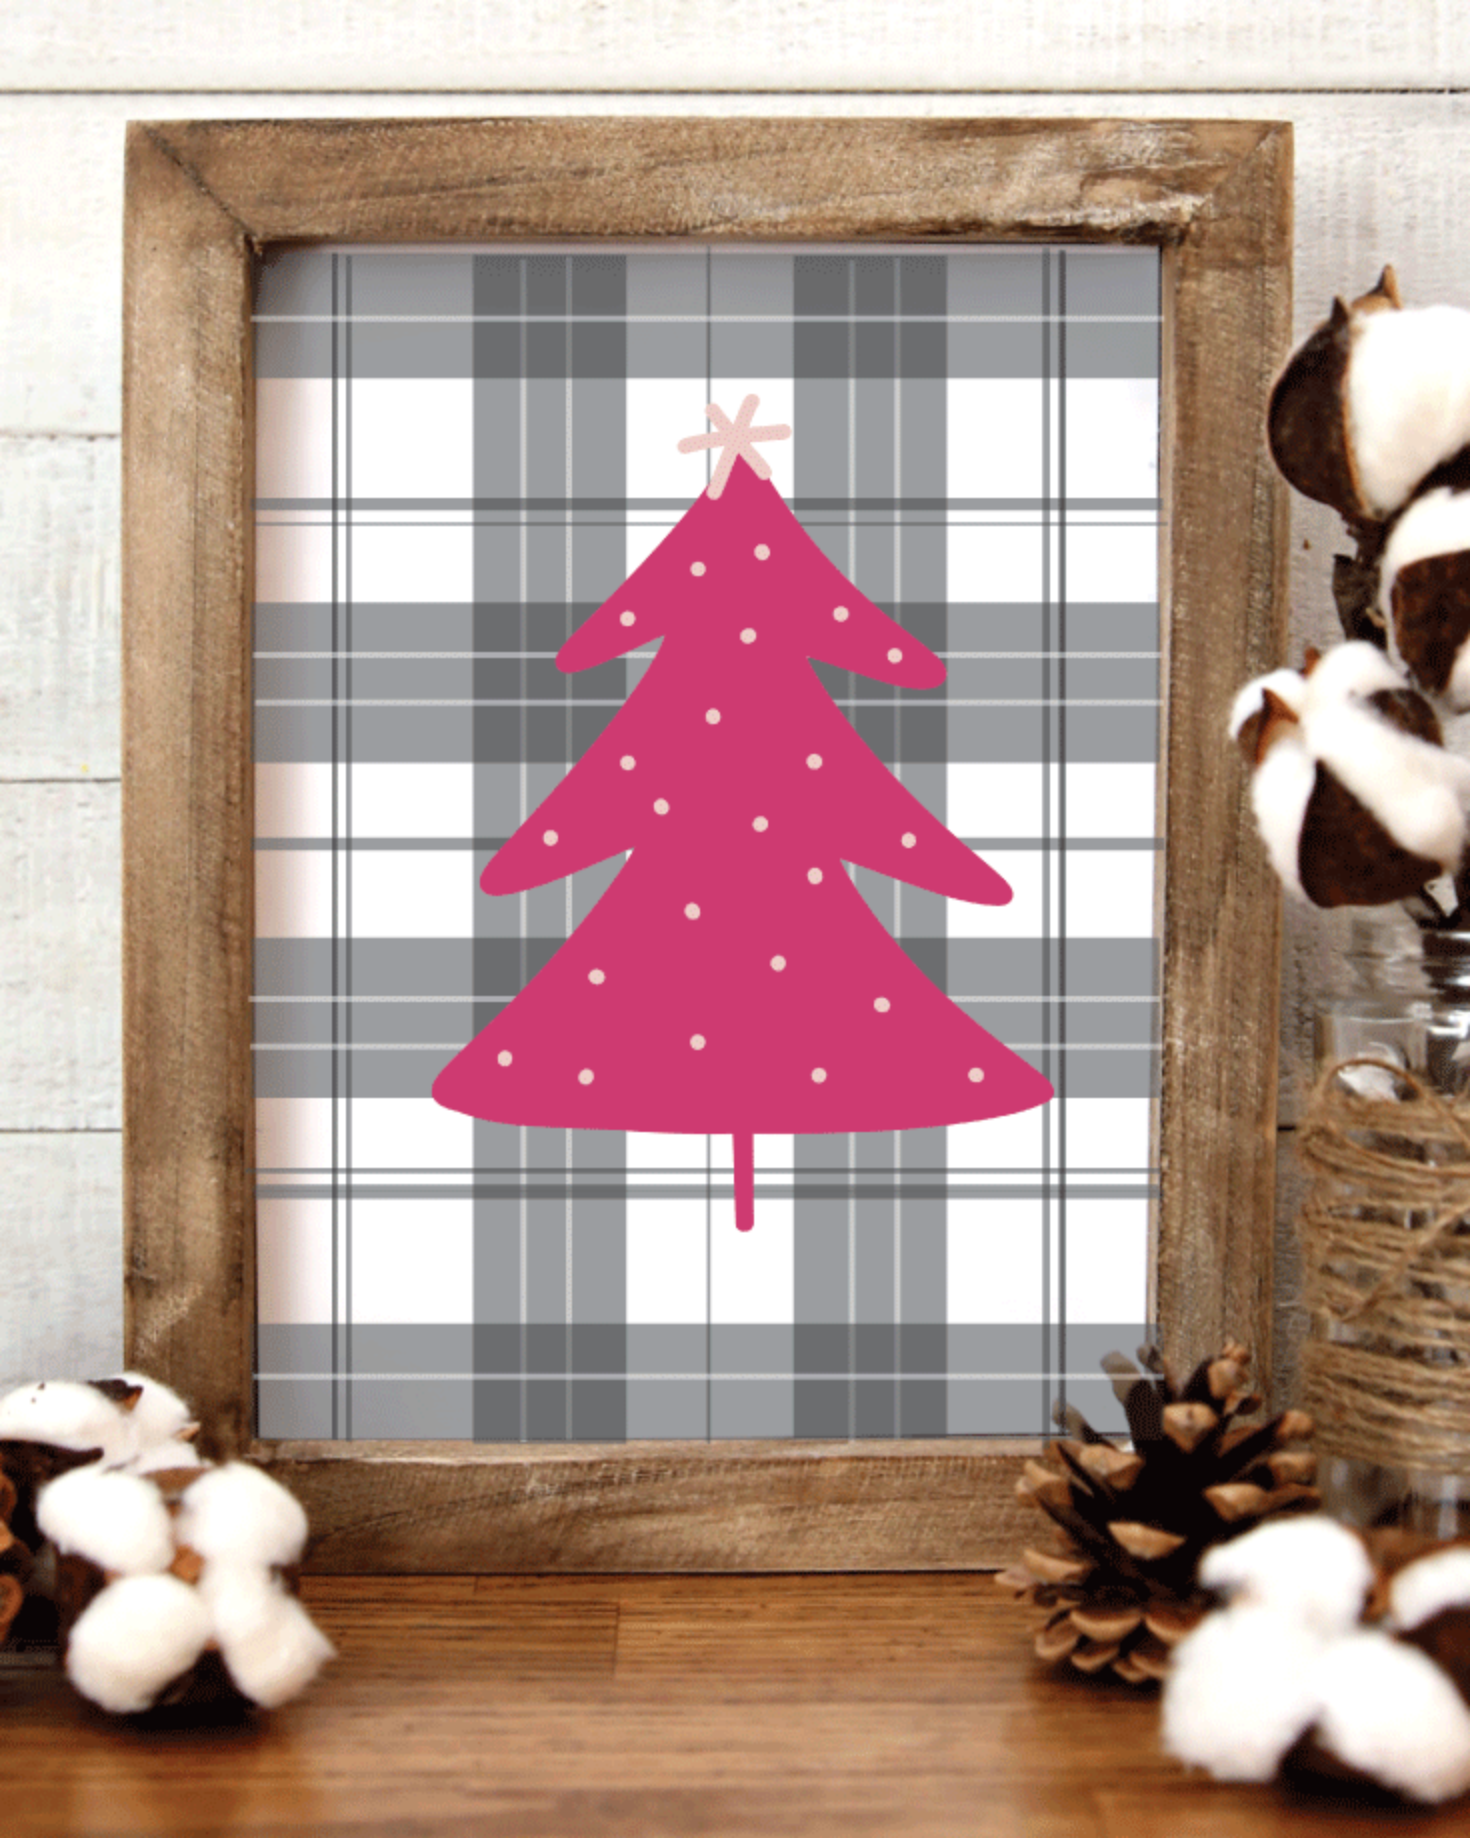 Printable, Gray & White Plaid & Pink Tree, Holiday Winter Christmas Wall Art Sign Print